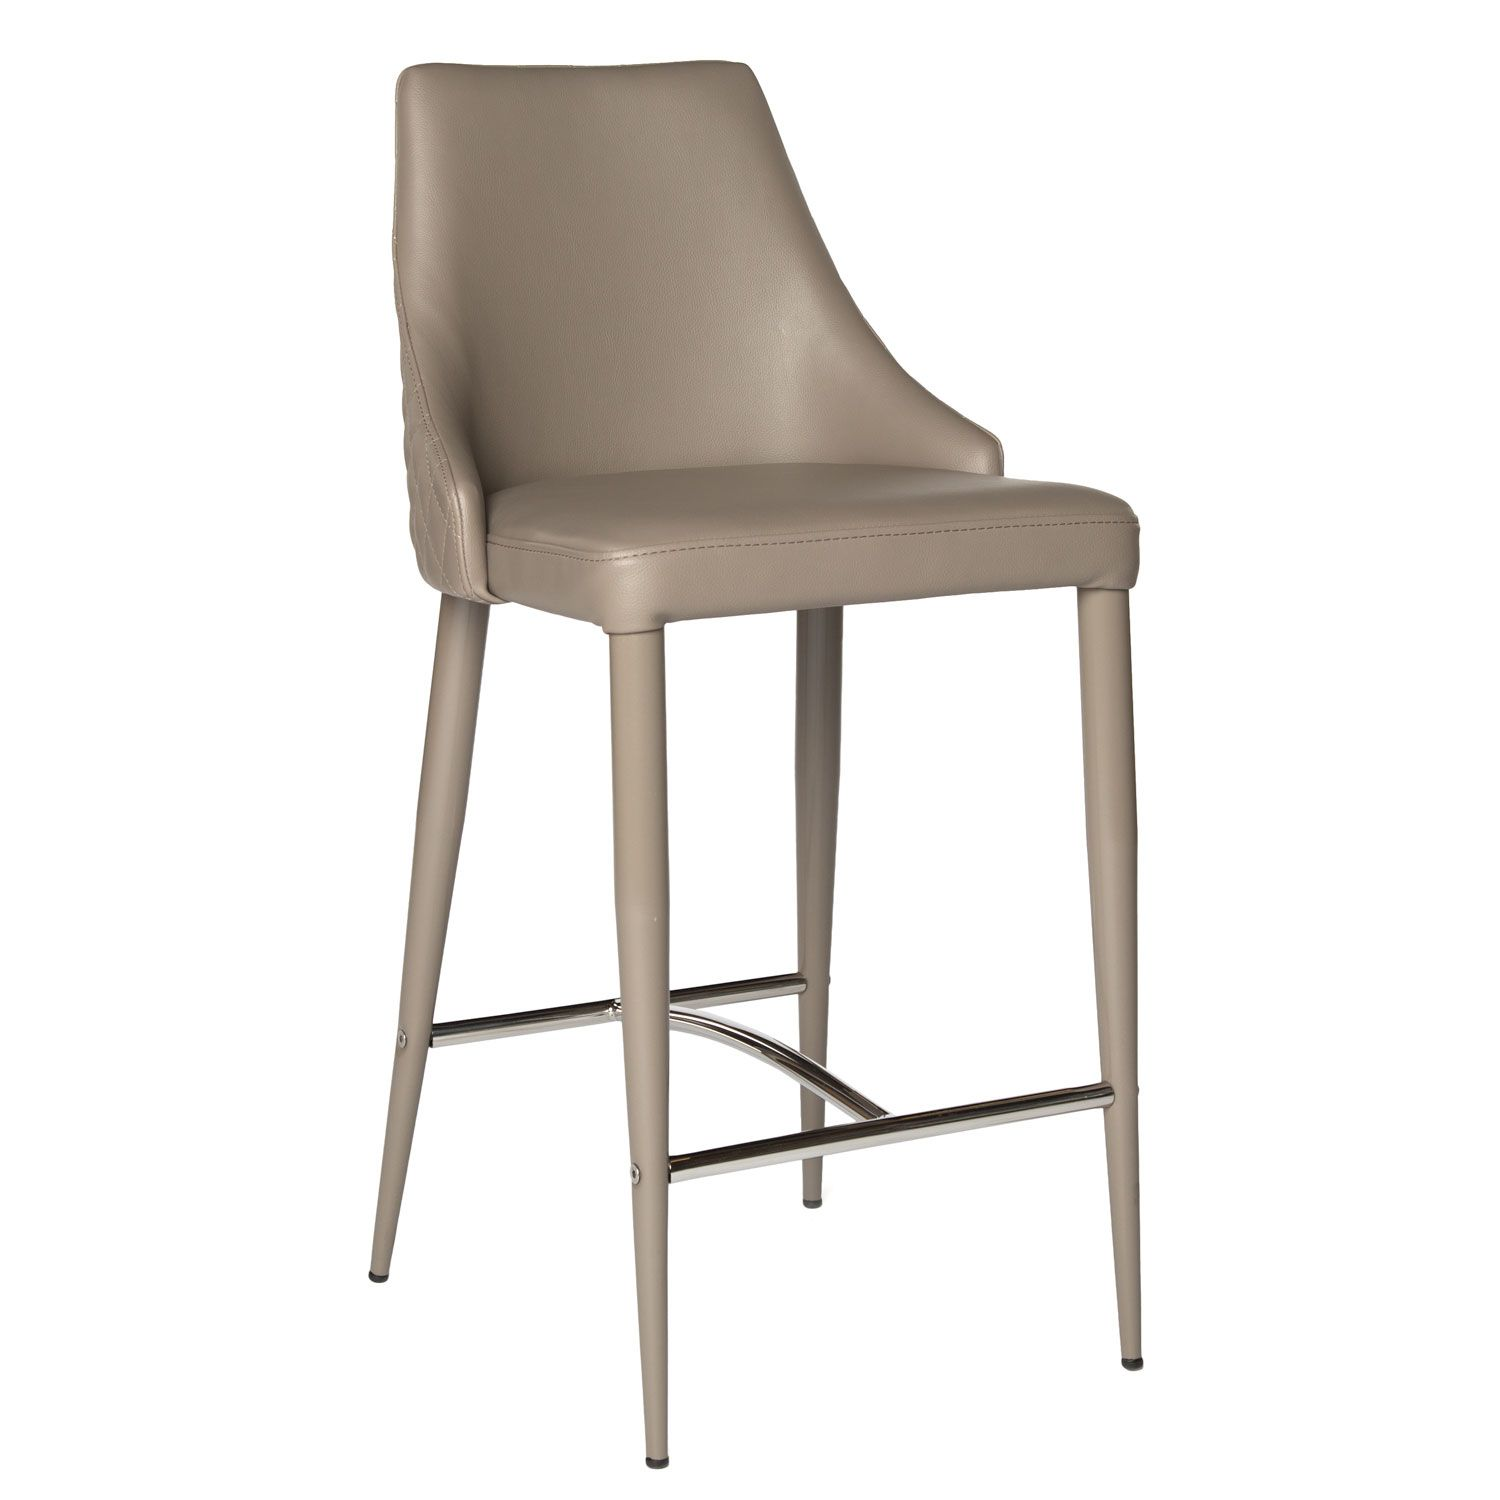 Taupe Color Counter Height Bar Stool With Quilted Back Design Matching Color Painted Metal Legs Non Swi Bar Stools Stool Kitchen Stools With Back